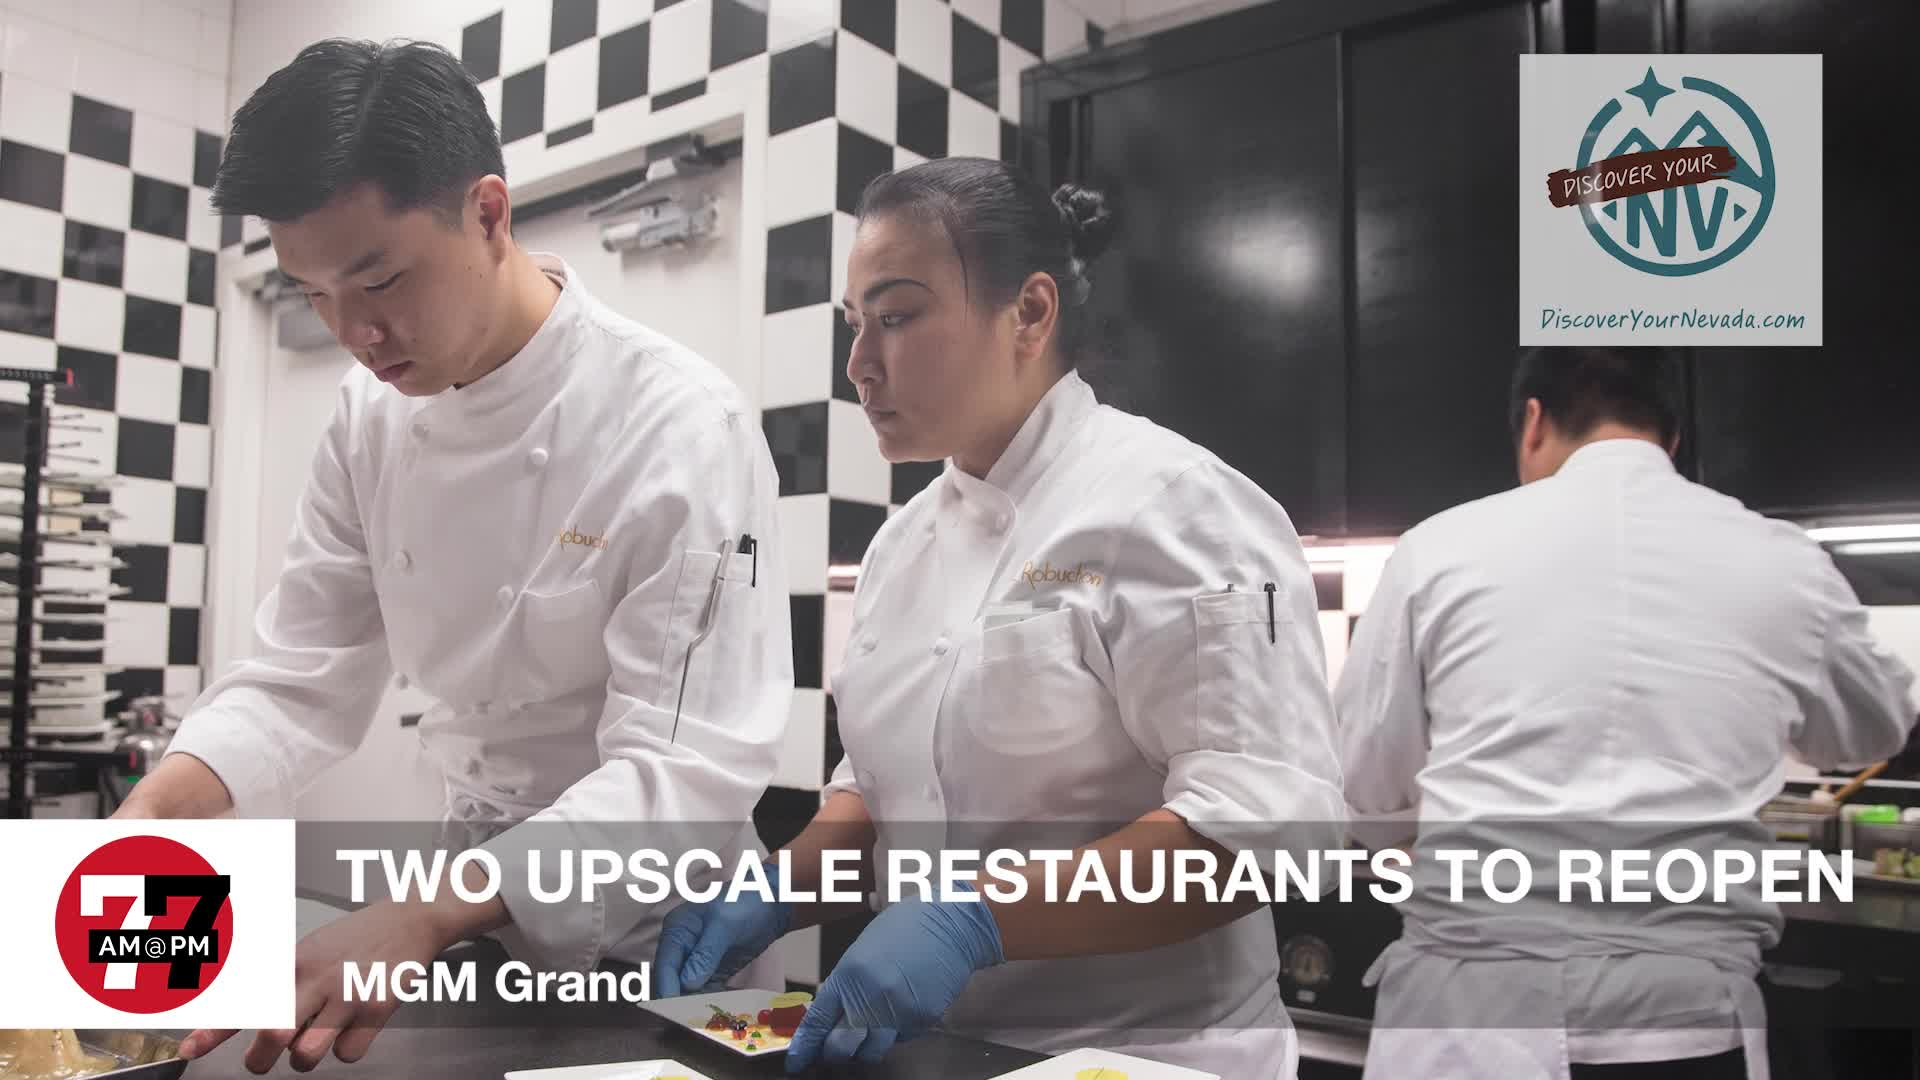 7@7PM Two Upscale Restaurants To Reopen